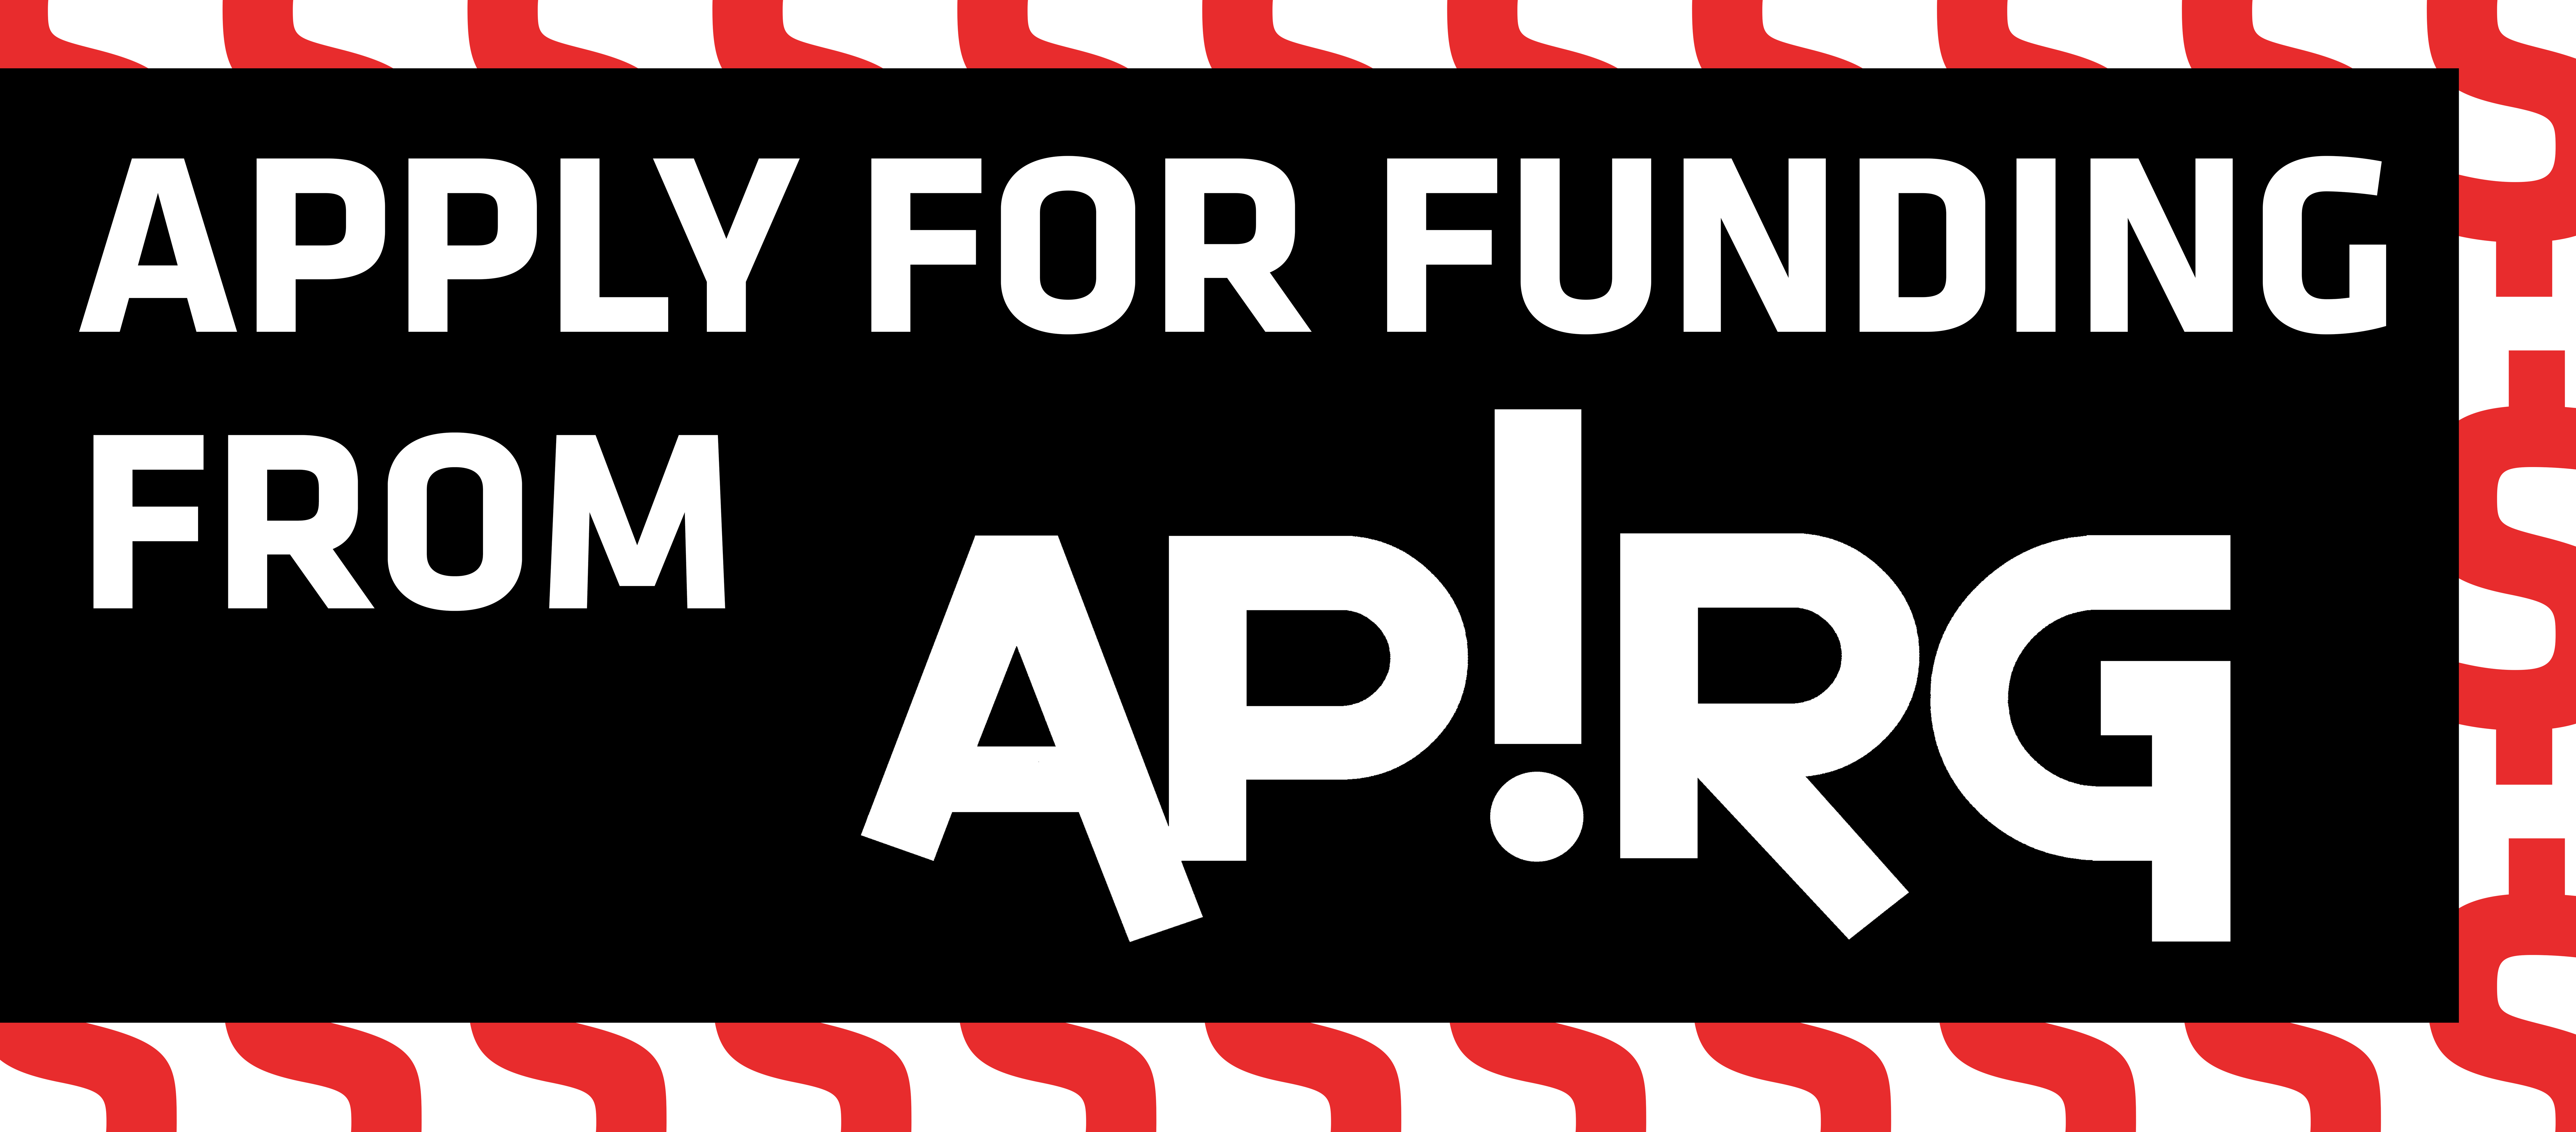 APIRG WINTER FUNDING ROUNDS: get your rad social justice event/project/groups some funding